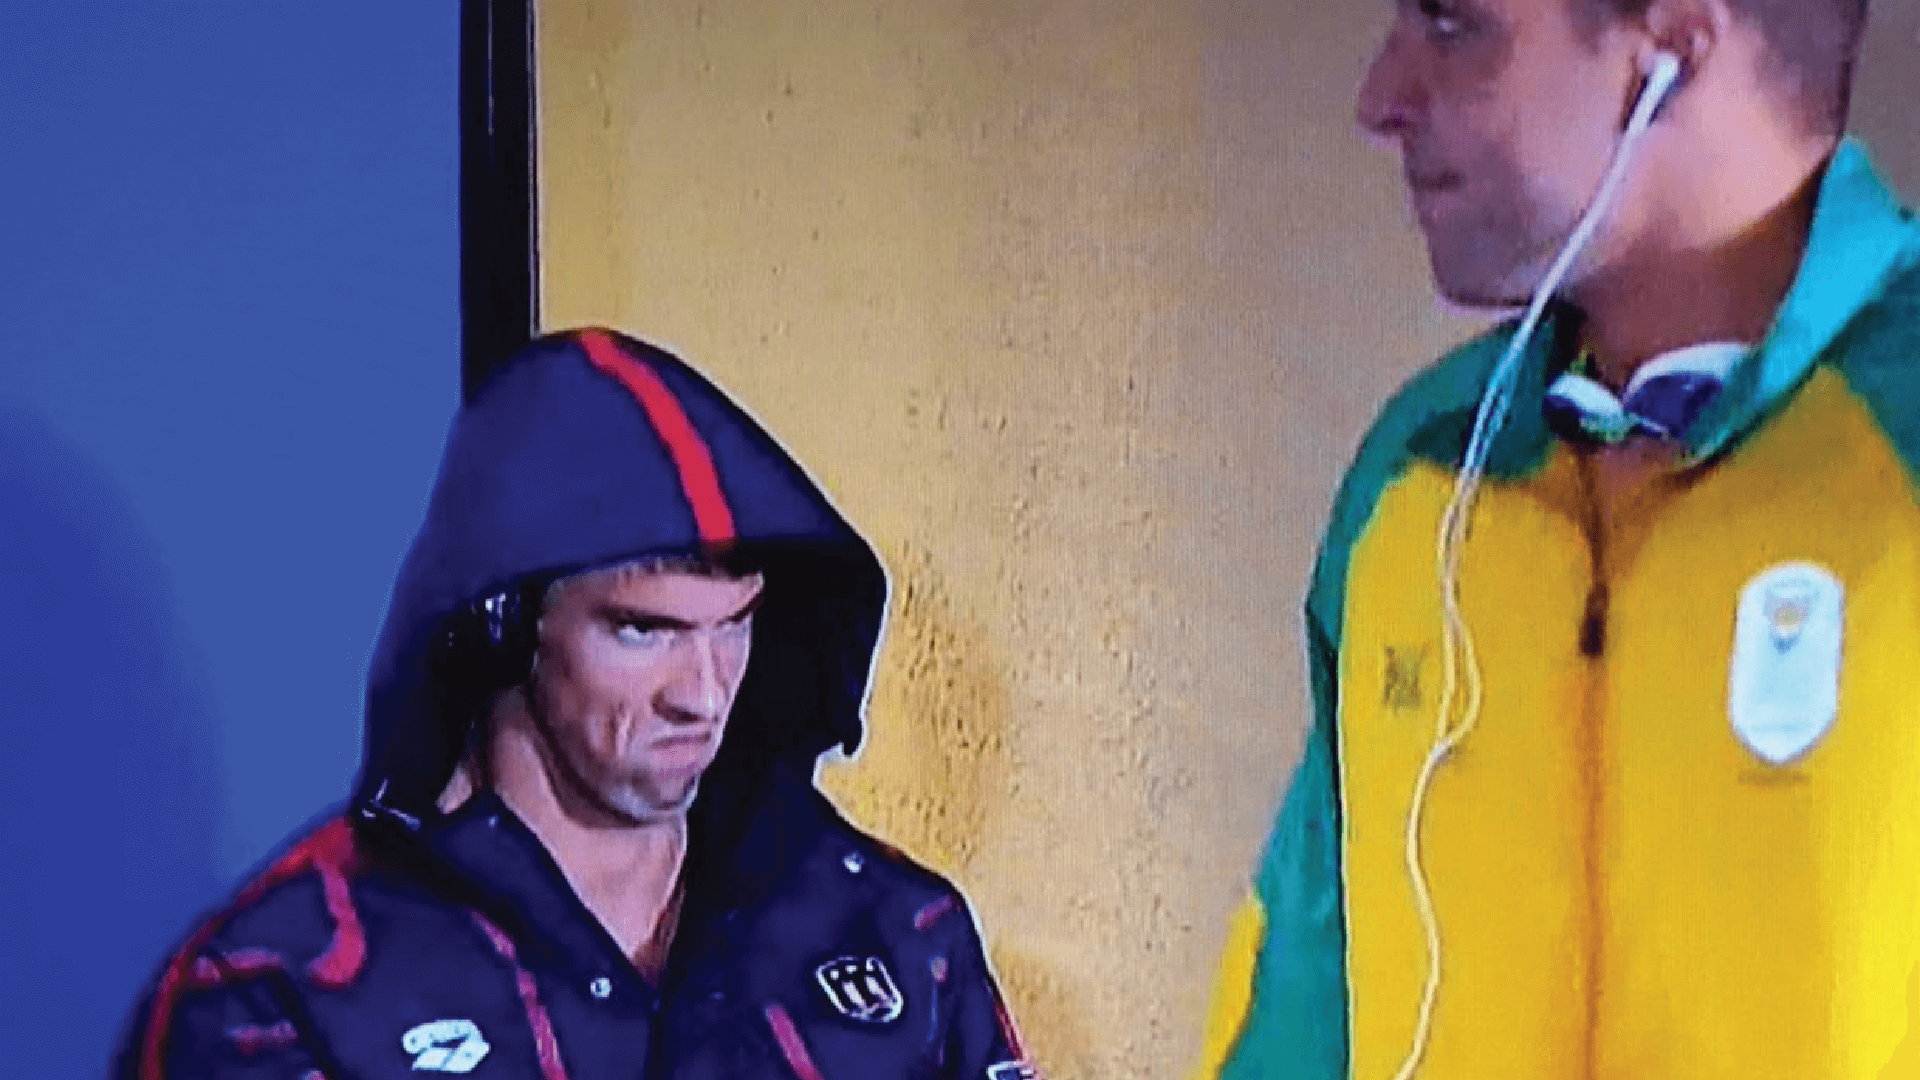 Michael Phelps throwing a stank face